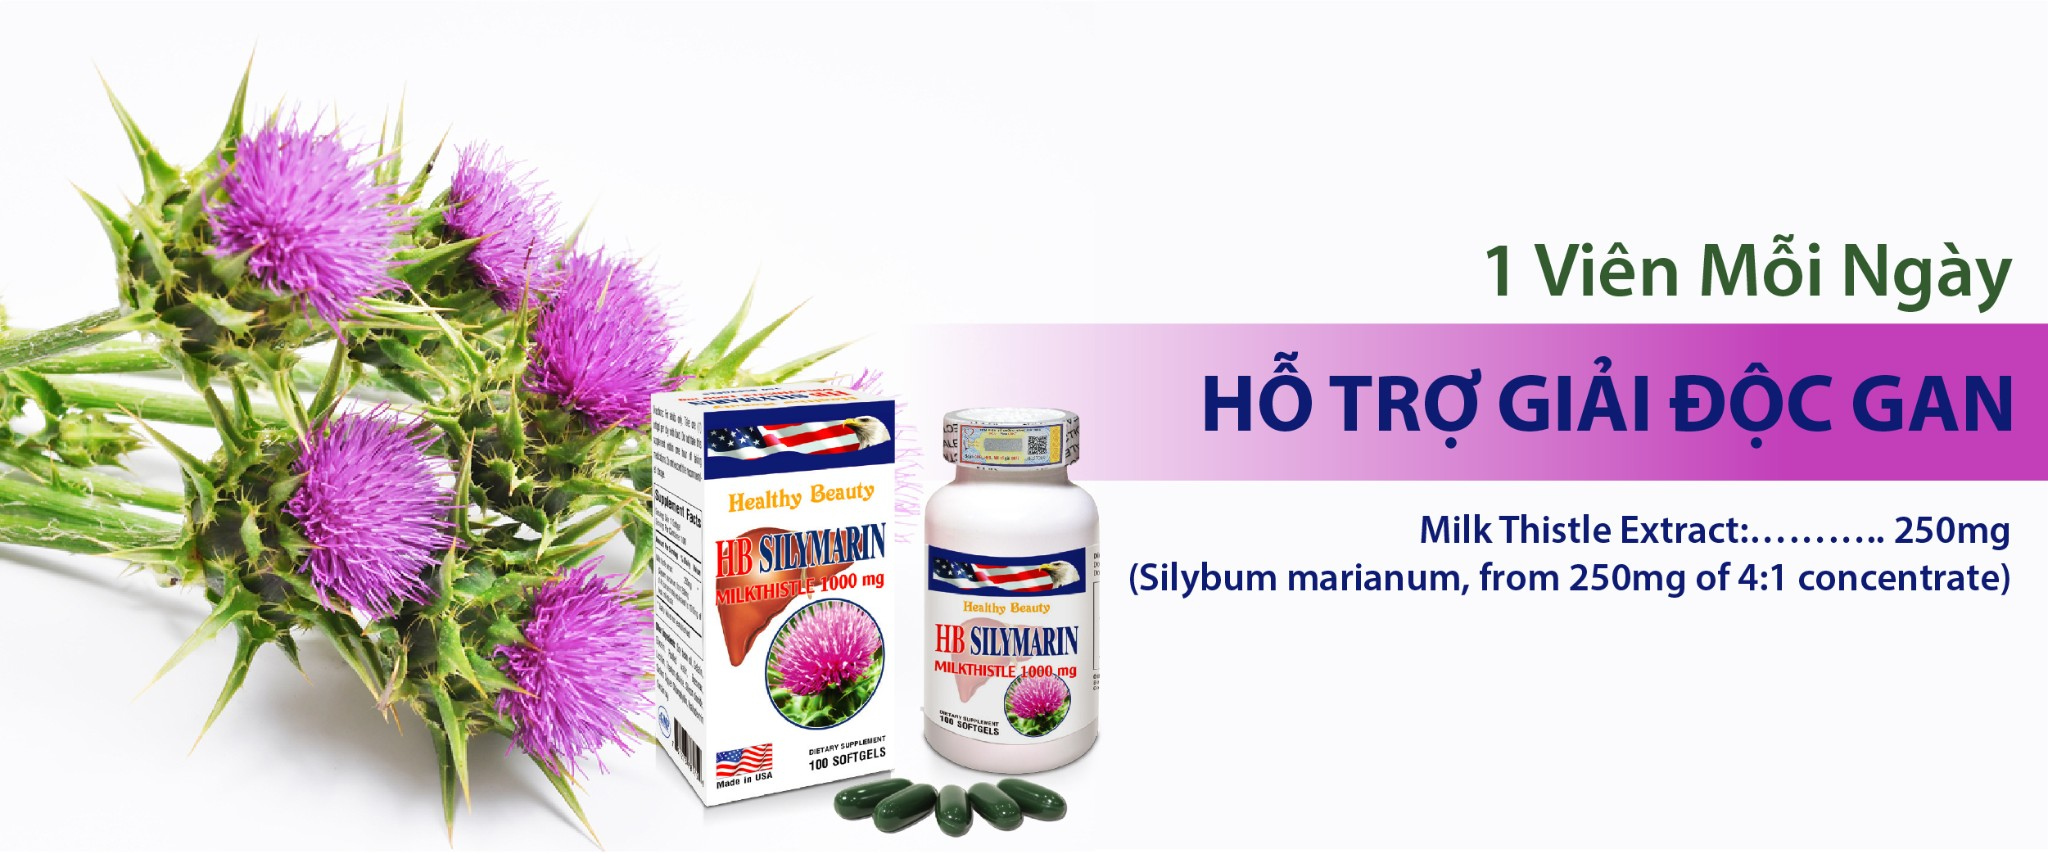 Healthy Beauty HB Silymarin 1000mg milkthistle extract